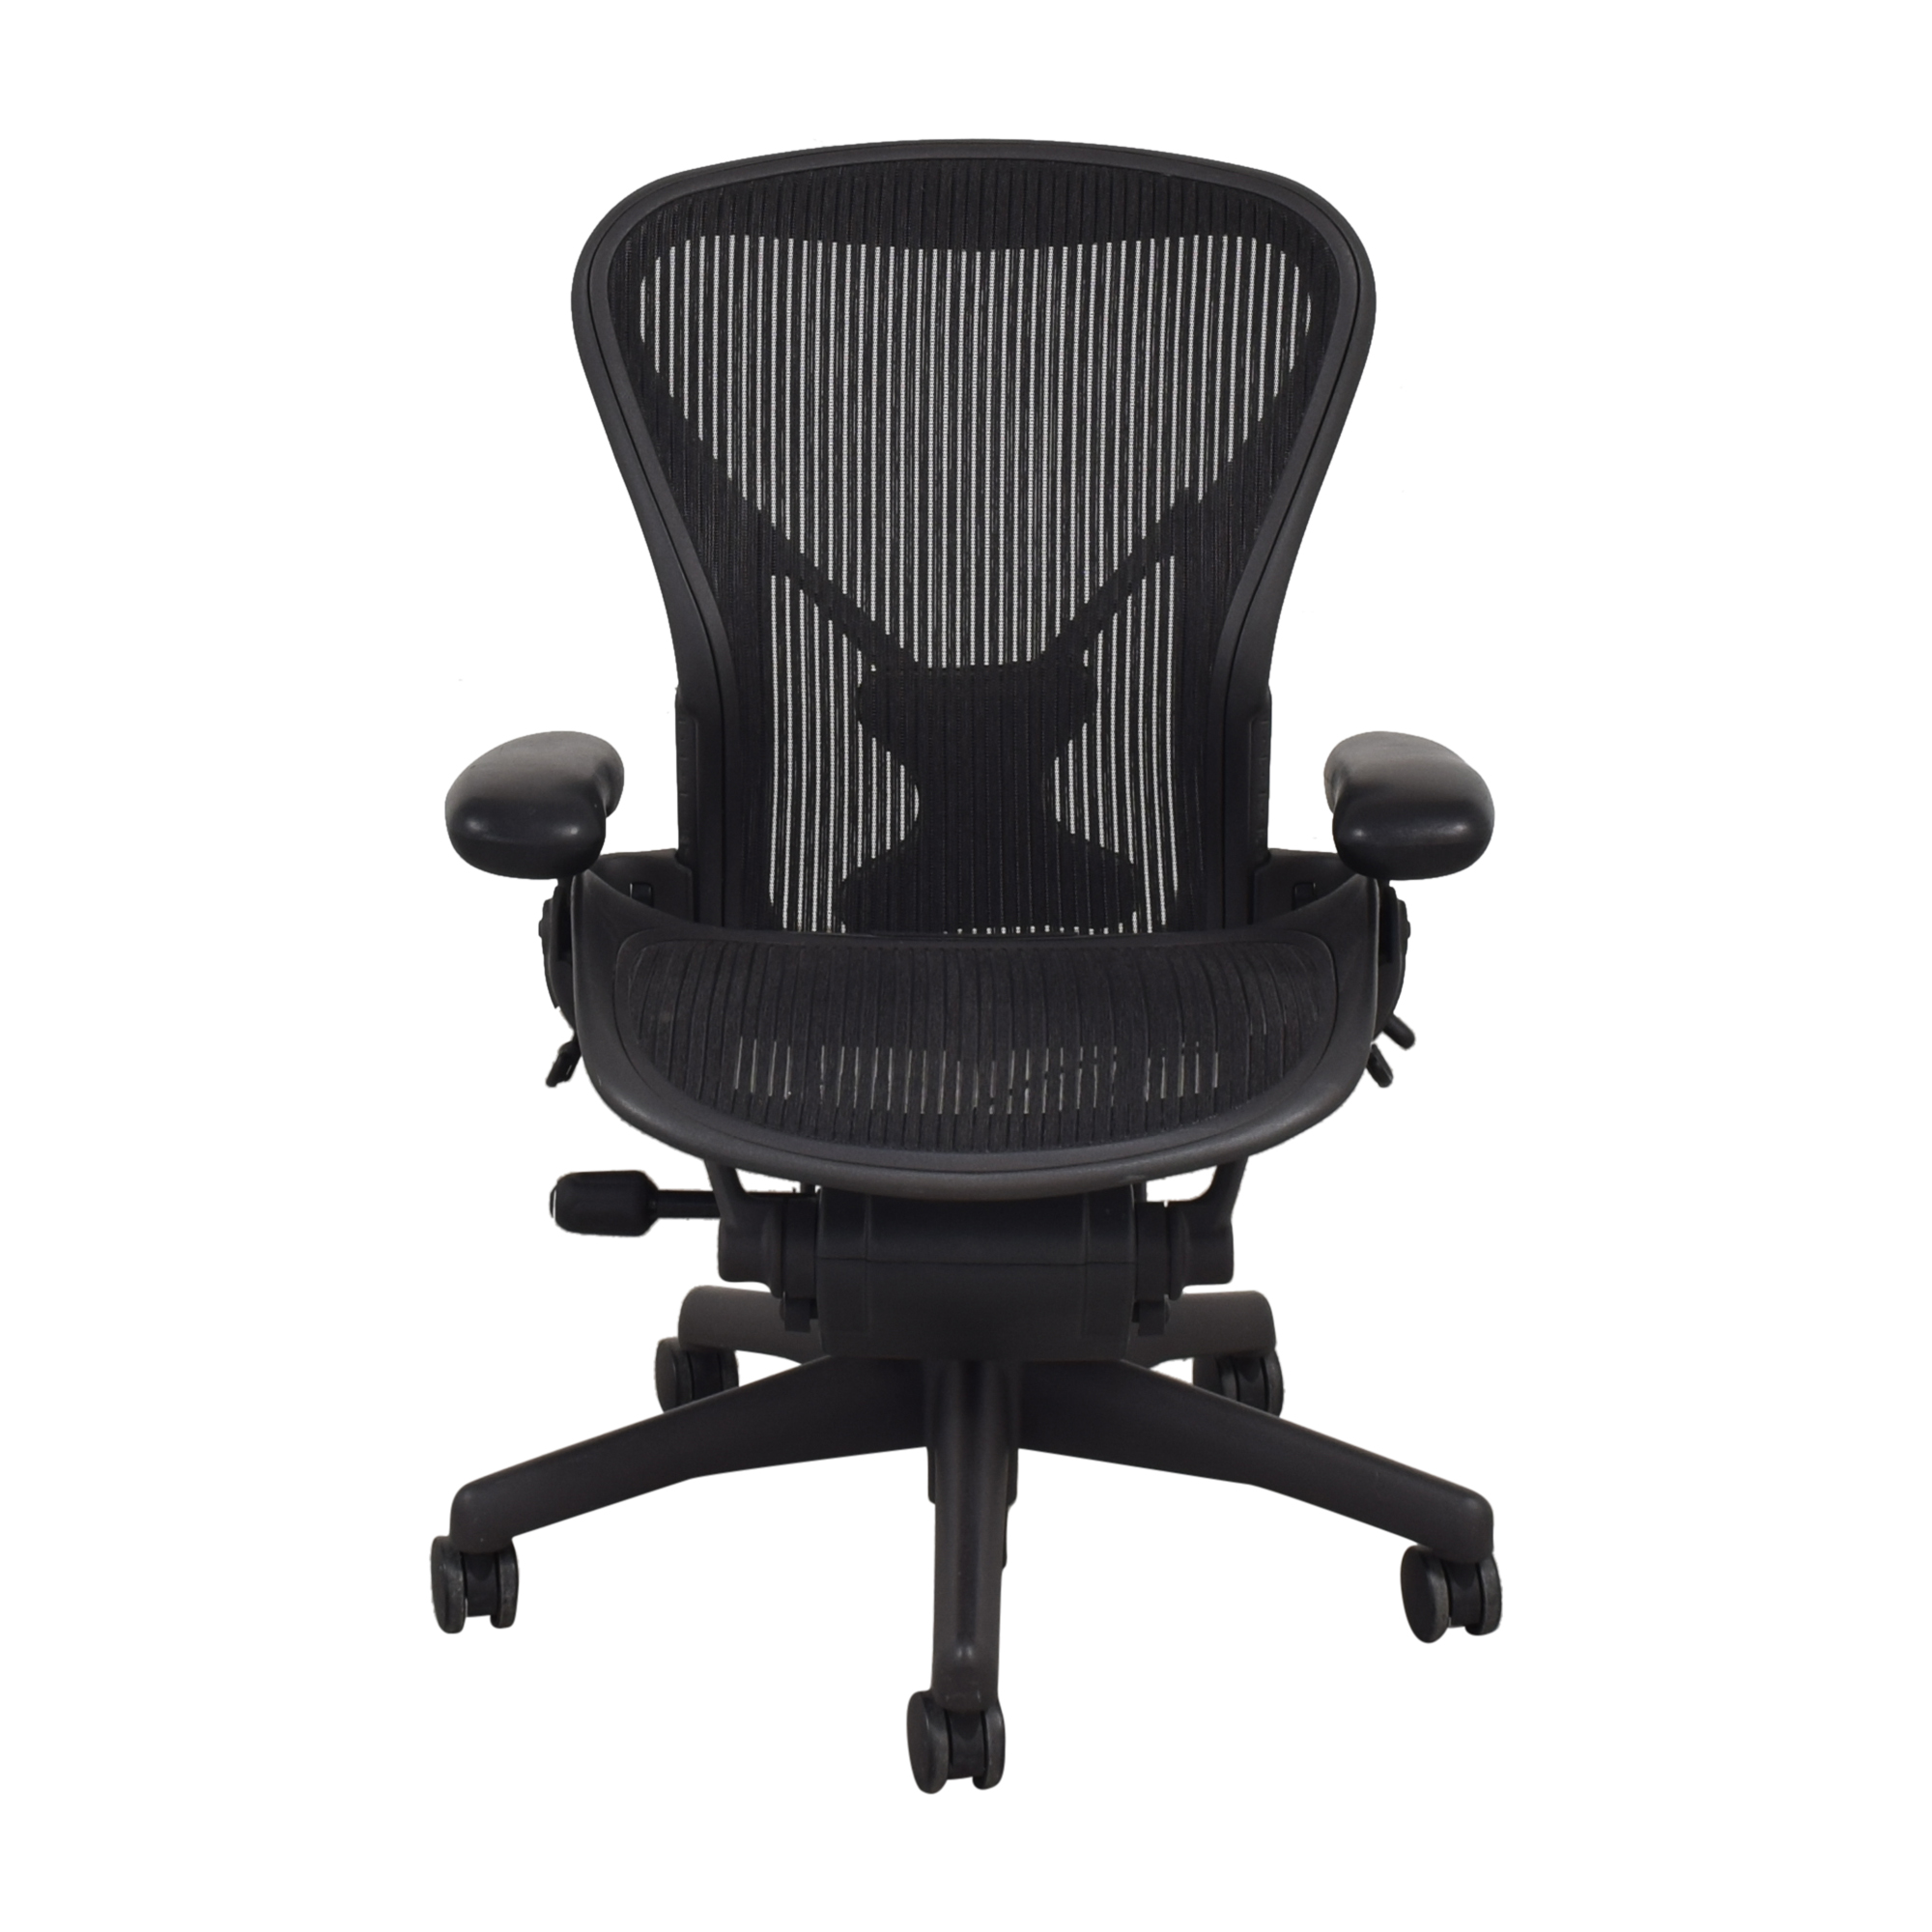 Herman Miller Herman Miller Size B Aeron Chair coupon